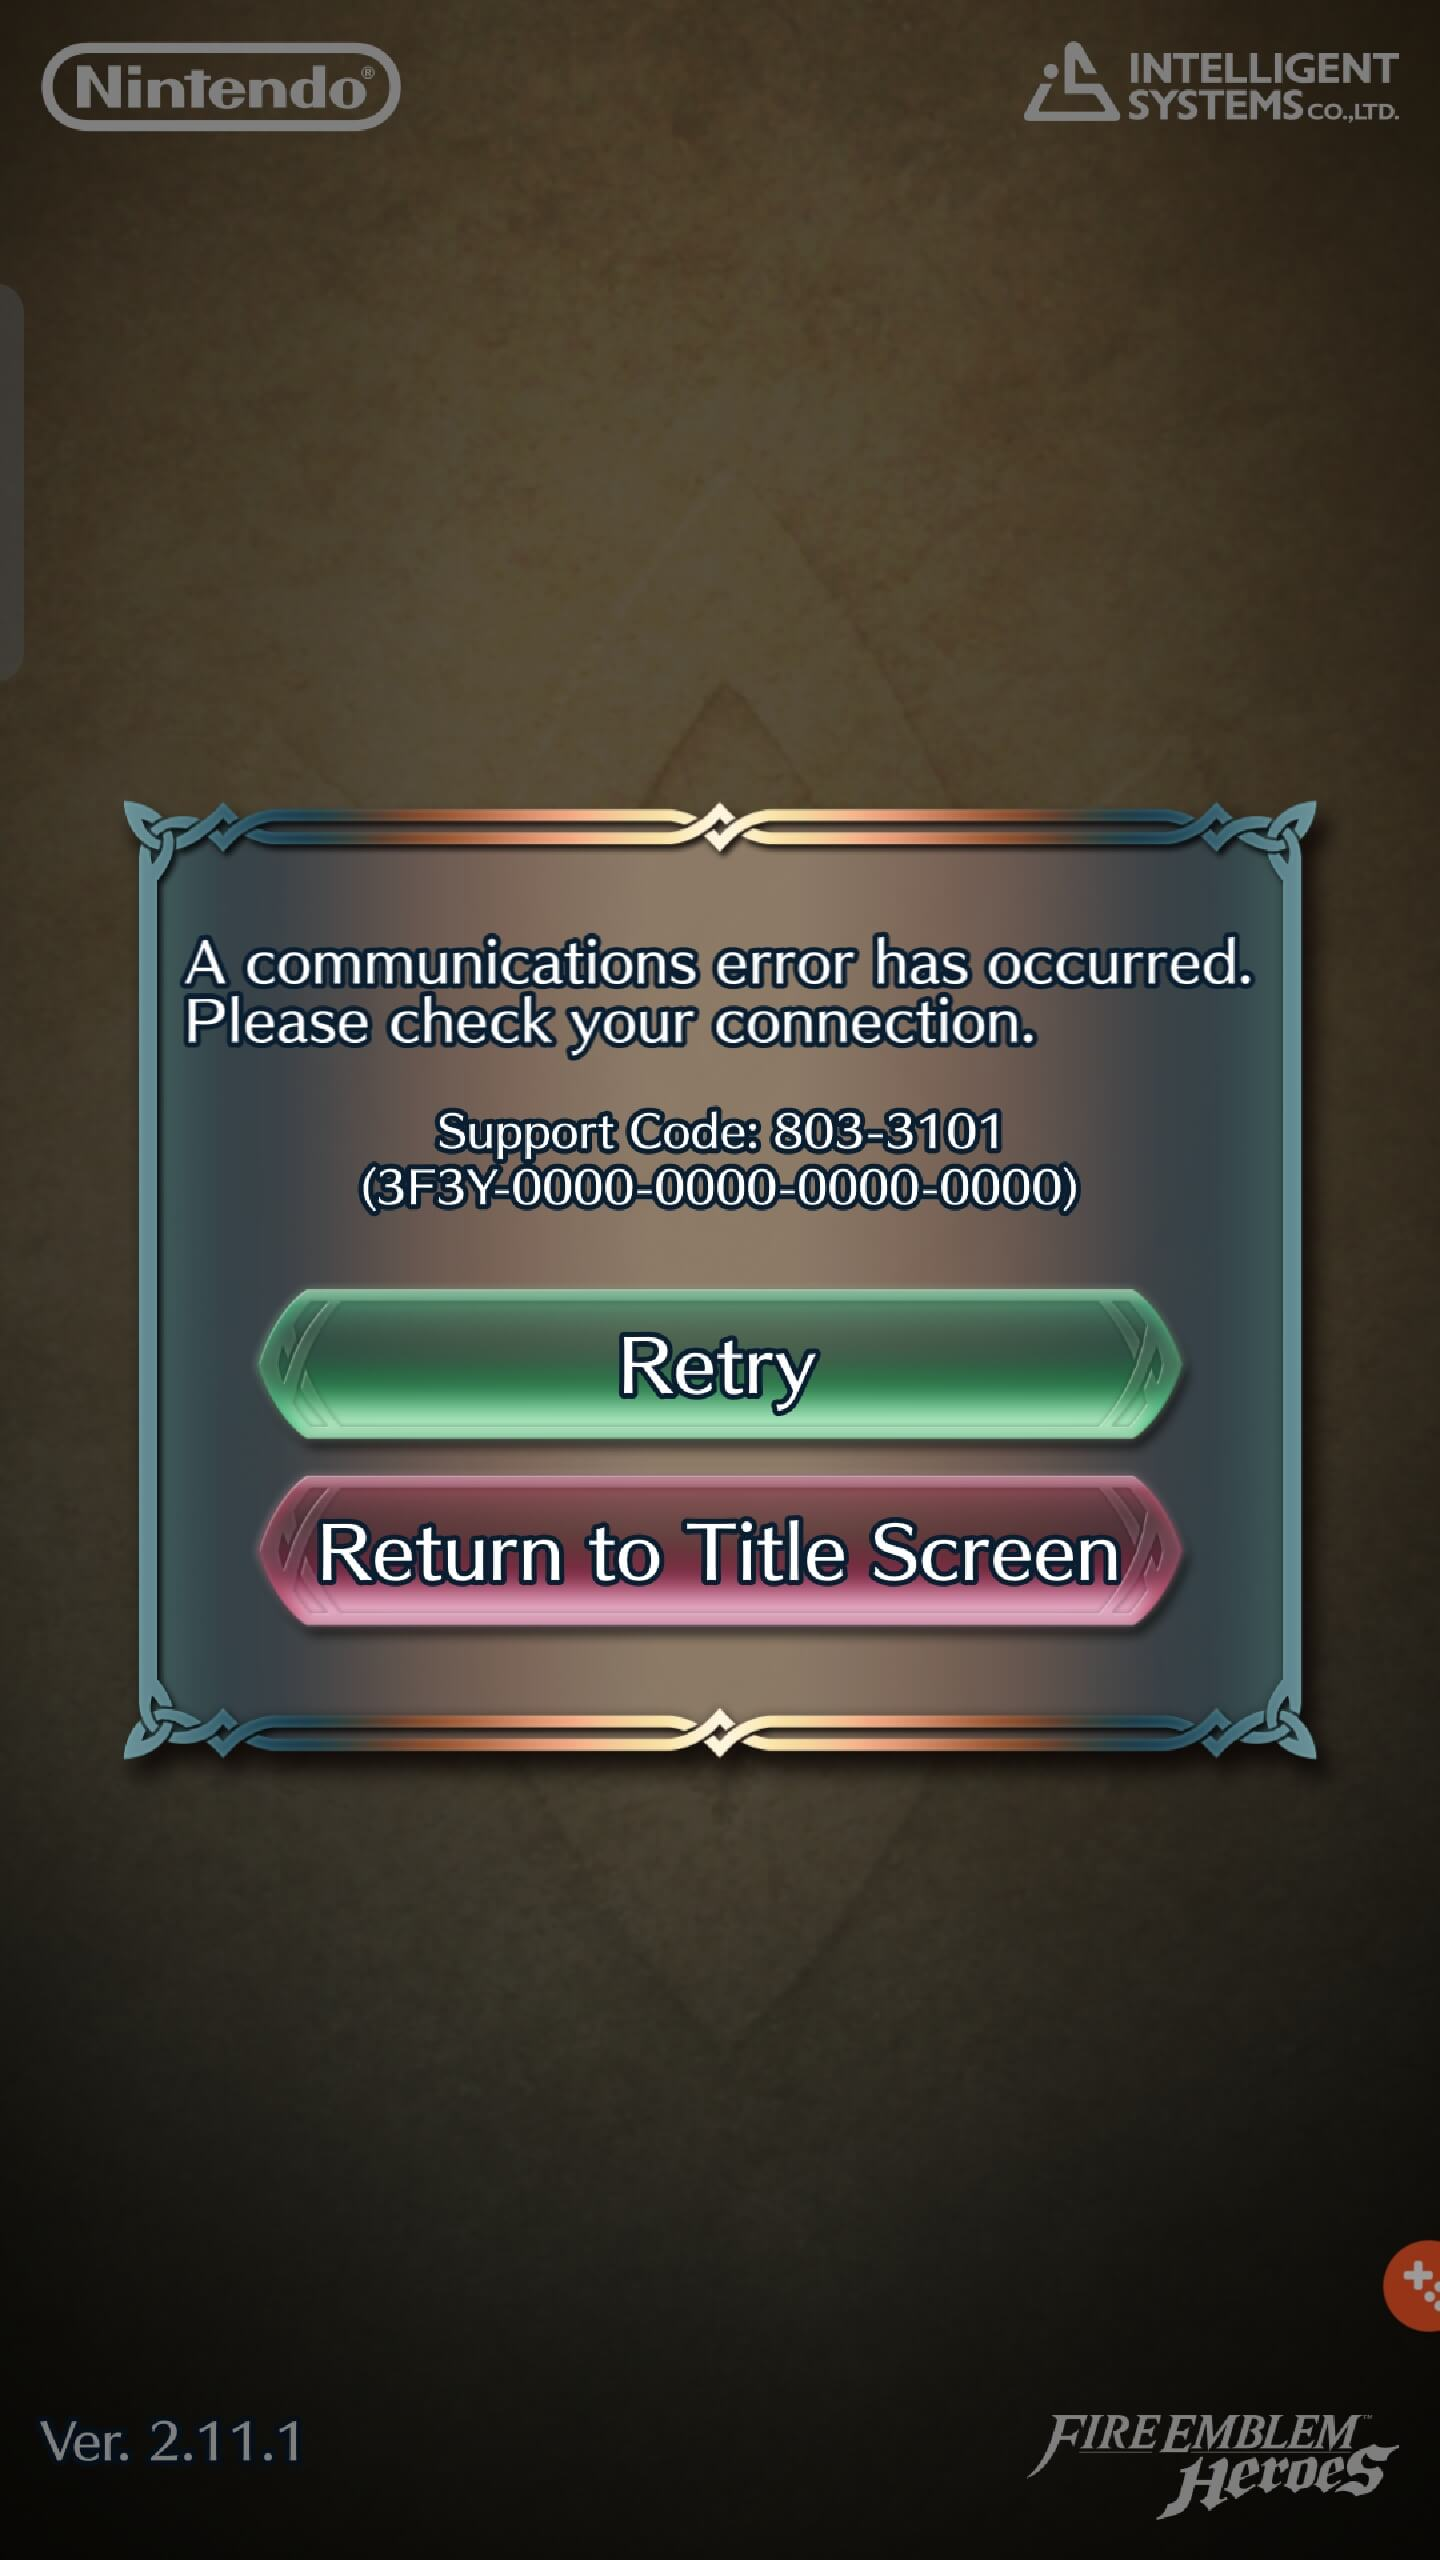 Banned from FEH | Fire Emblem Heroes Wiki - GamePress